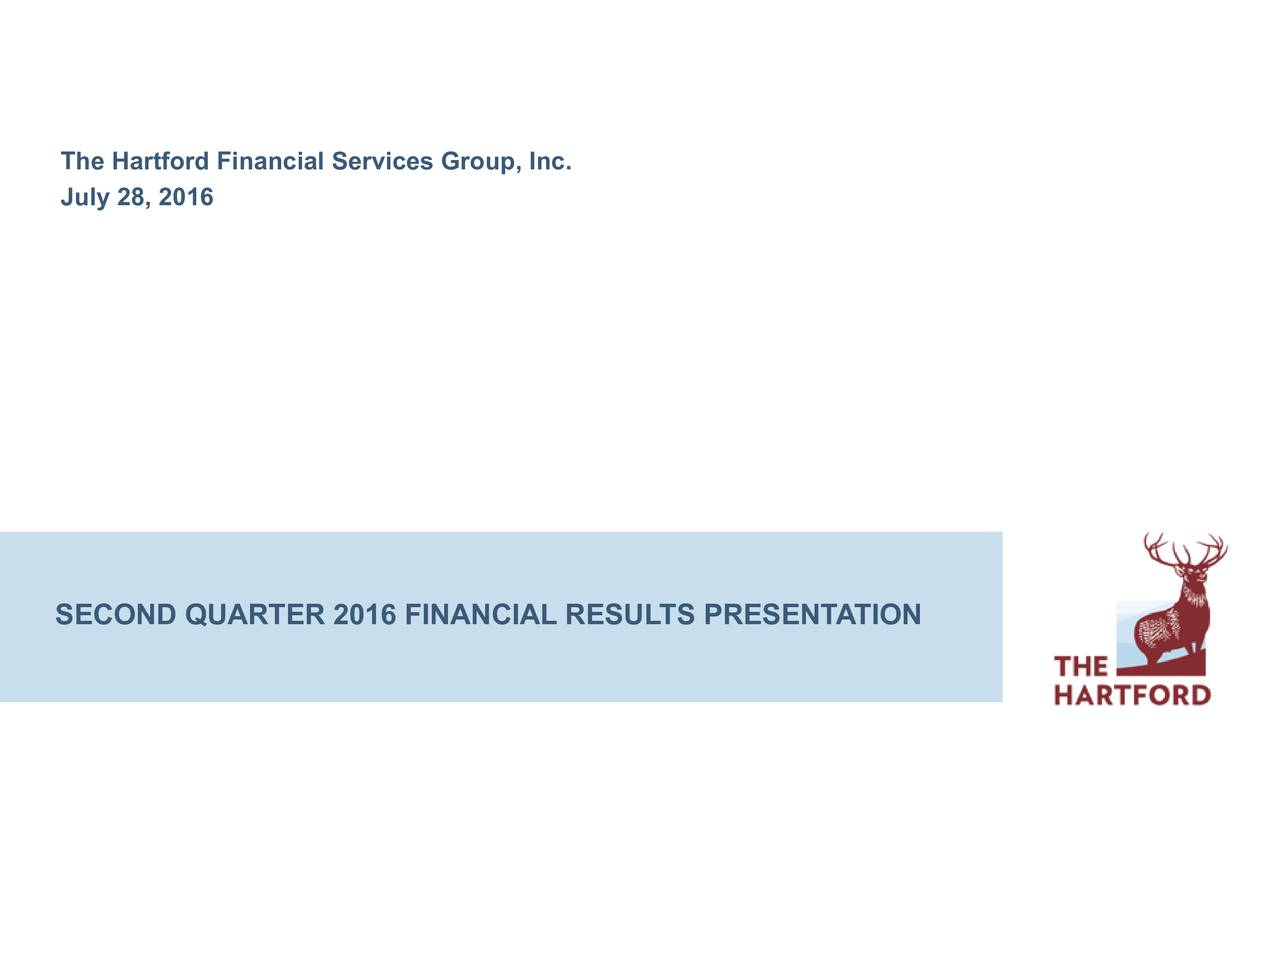 July28, 2016 SECOND QUARTER 2016 FINANCIAL RESULTS PRESENTATION